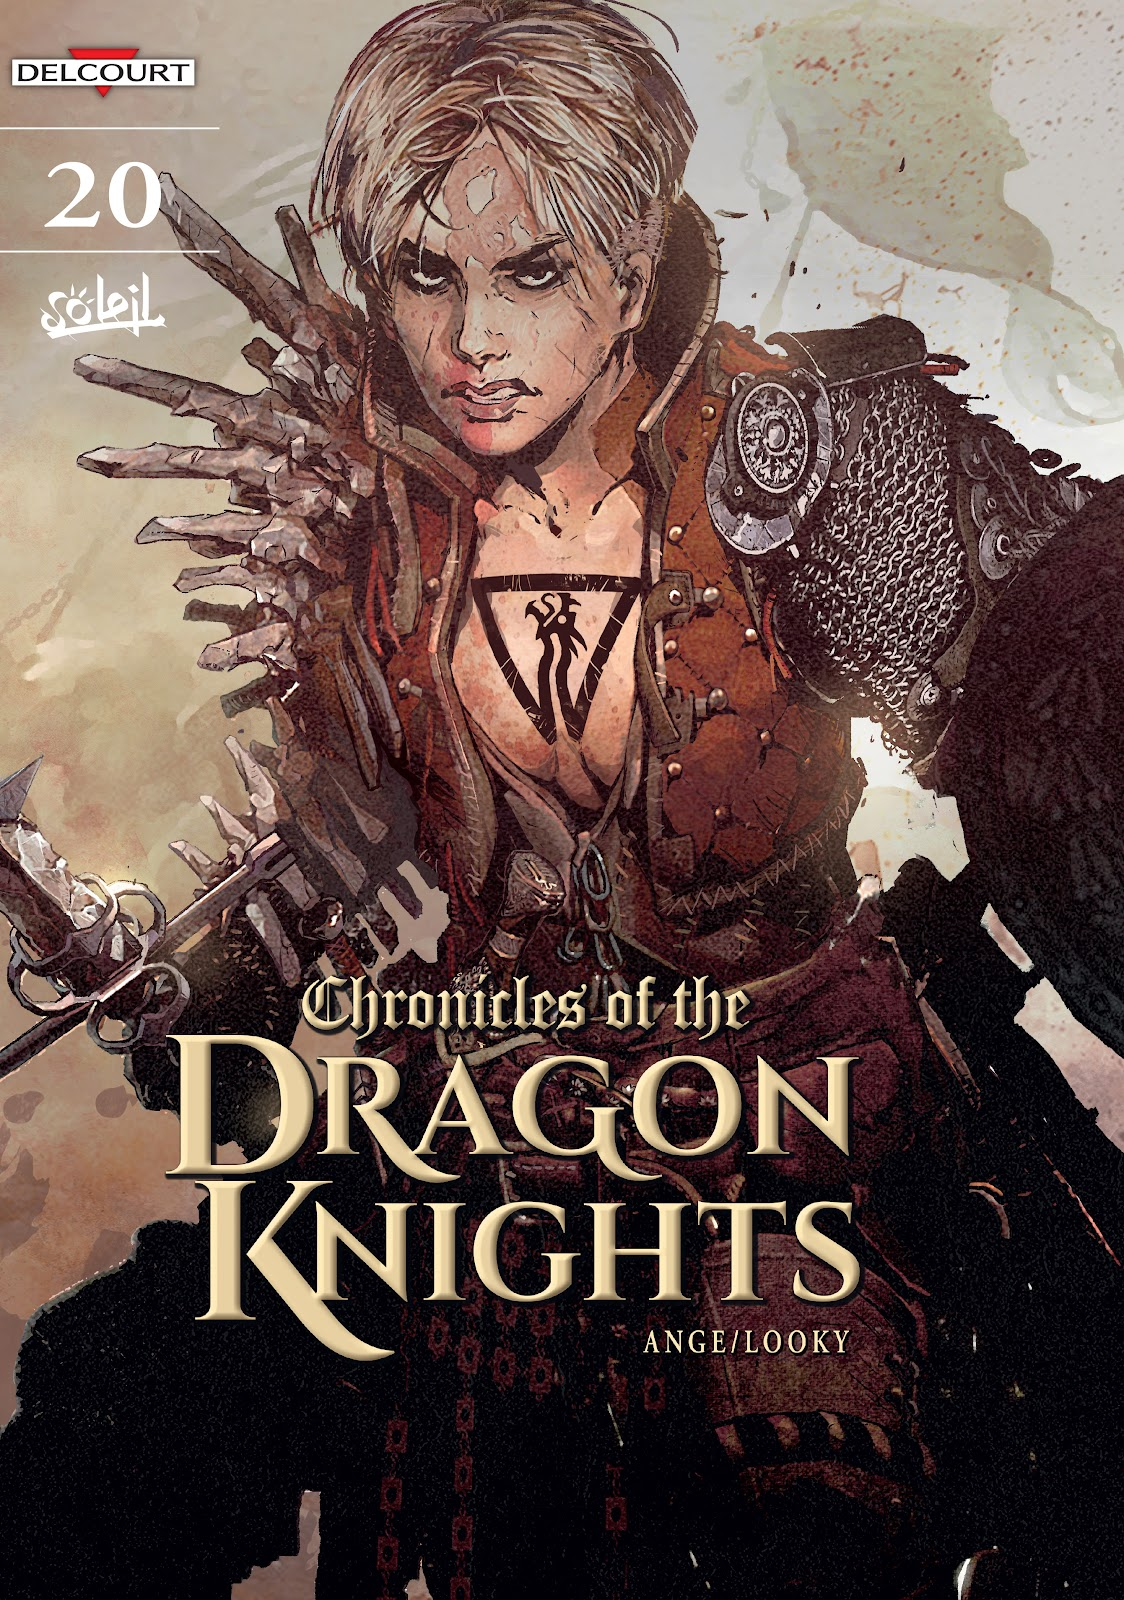 Read online Chronicles of the Dragon Knights comic -  Issue #20 - 1